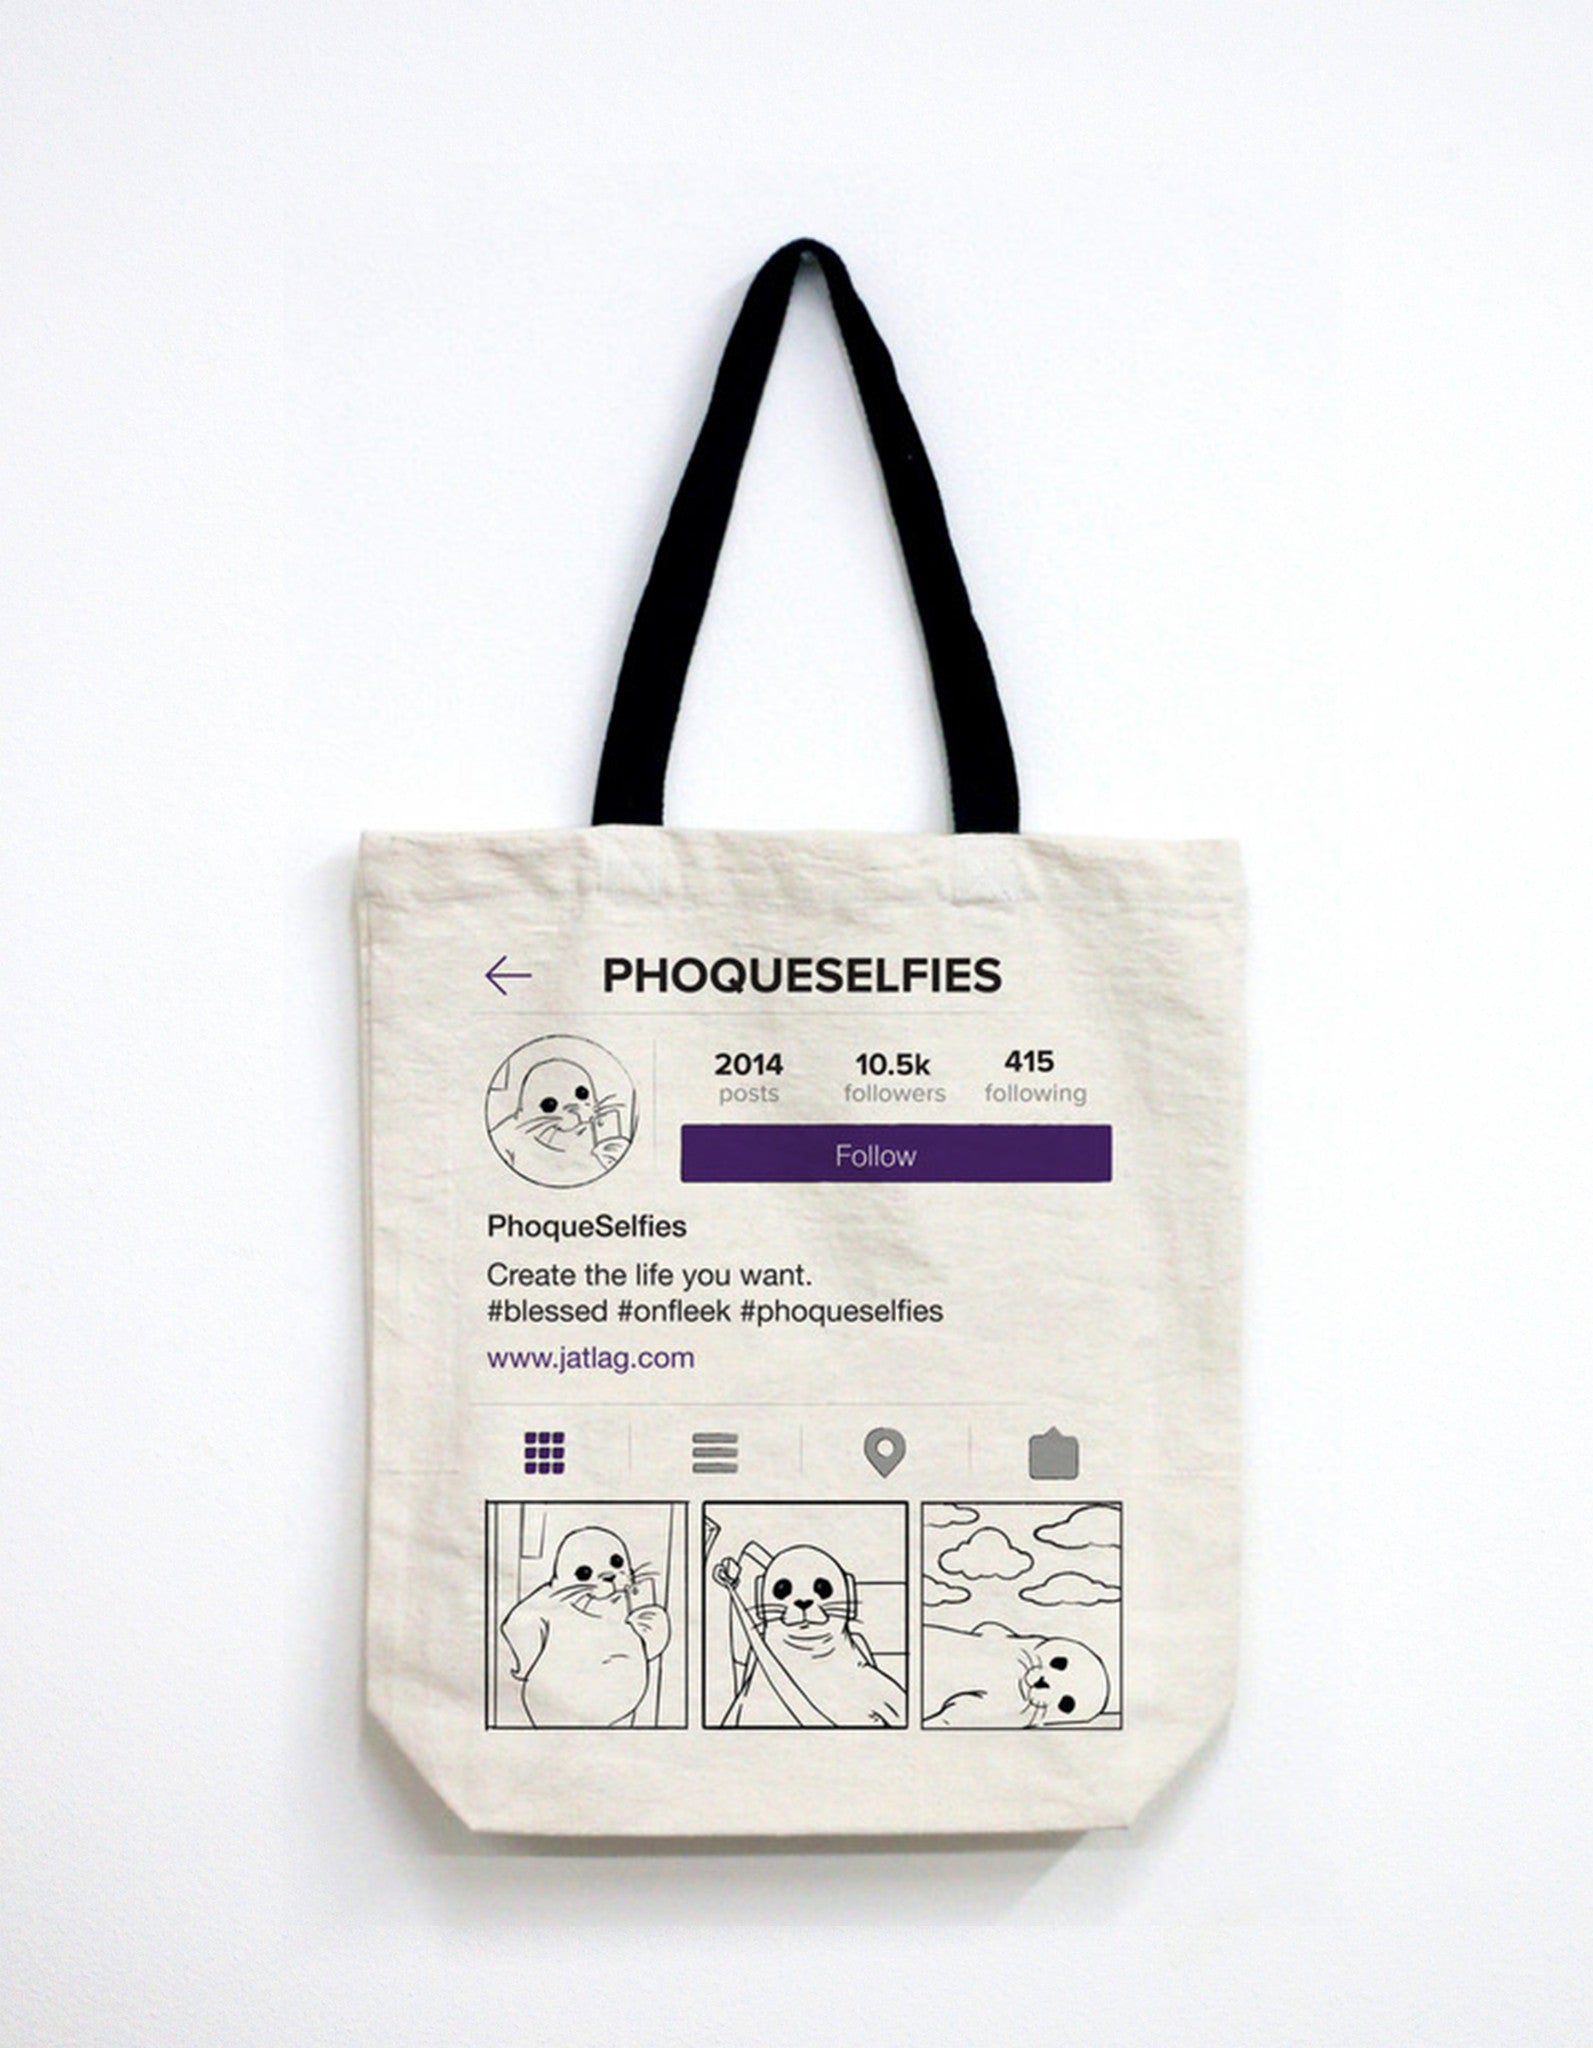 phoqueselfies tote bag